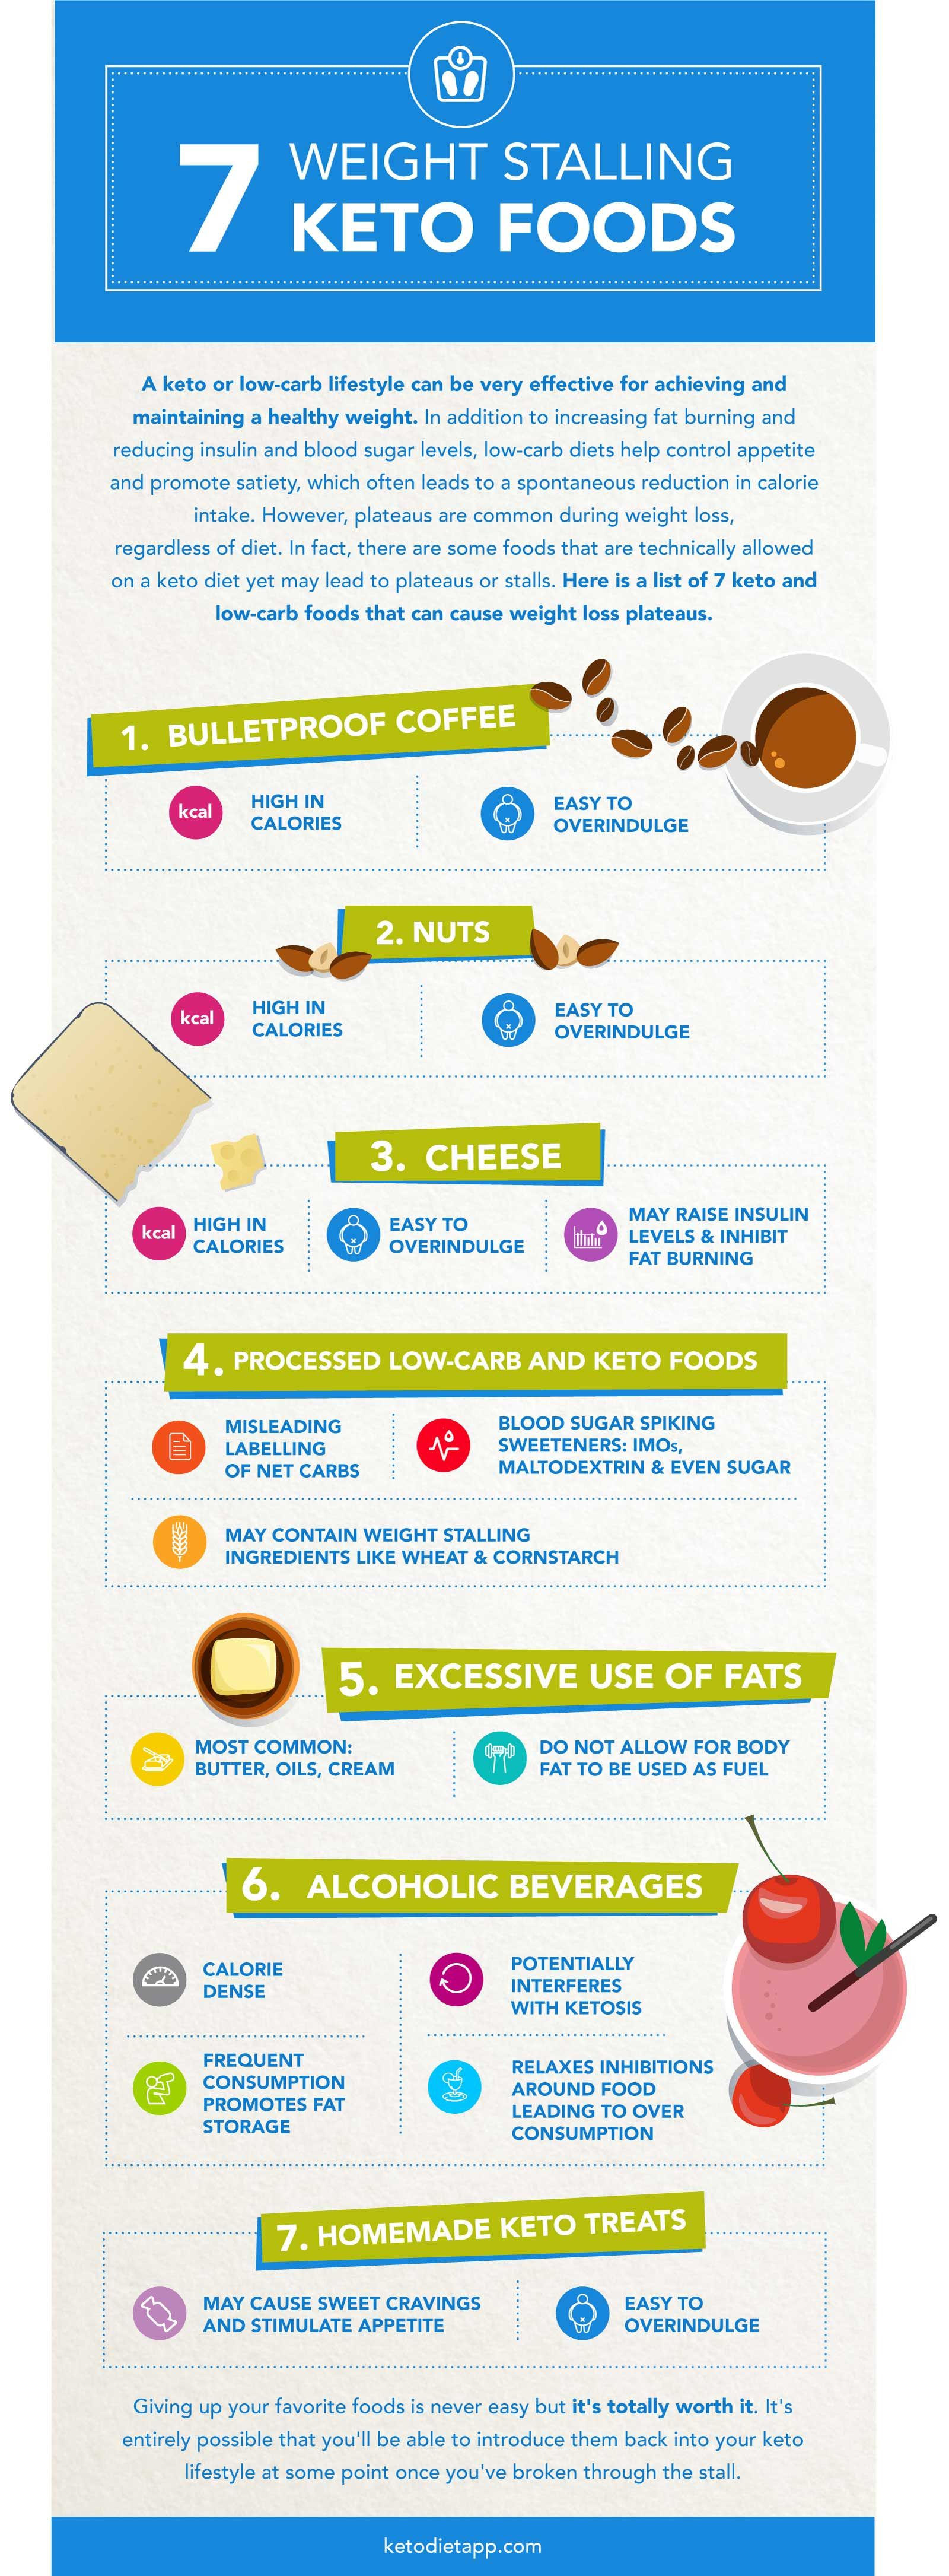 what is your carb limit on a keto diet